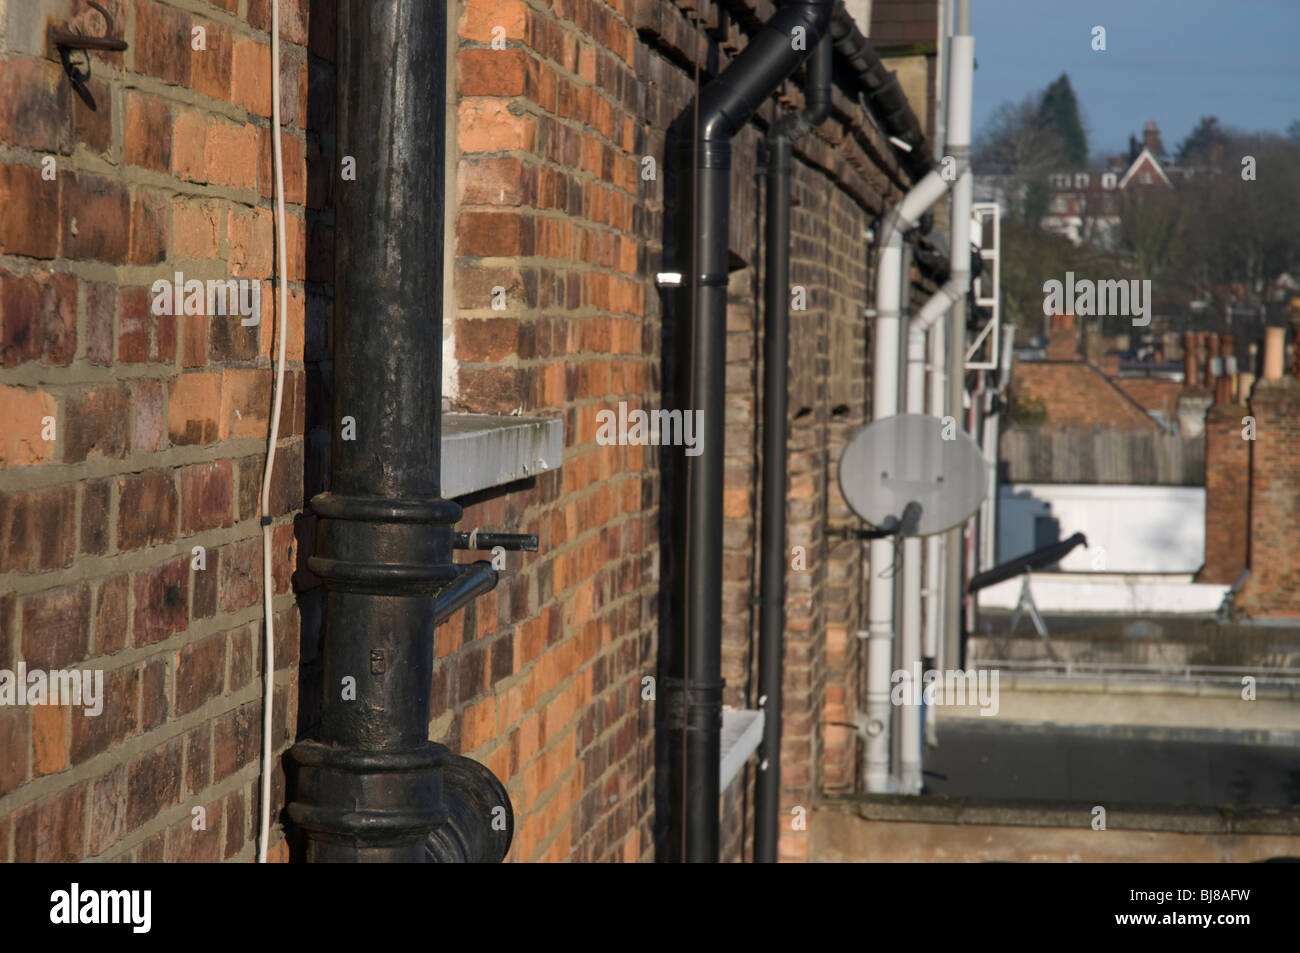 Drain Pipe and Brickwork - Stock Image